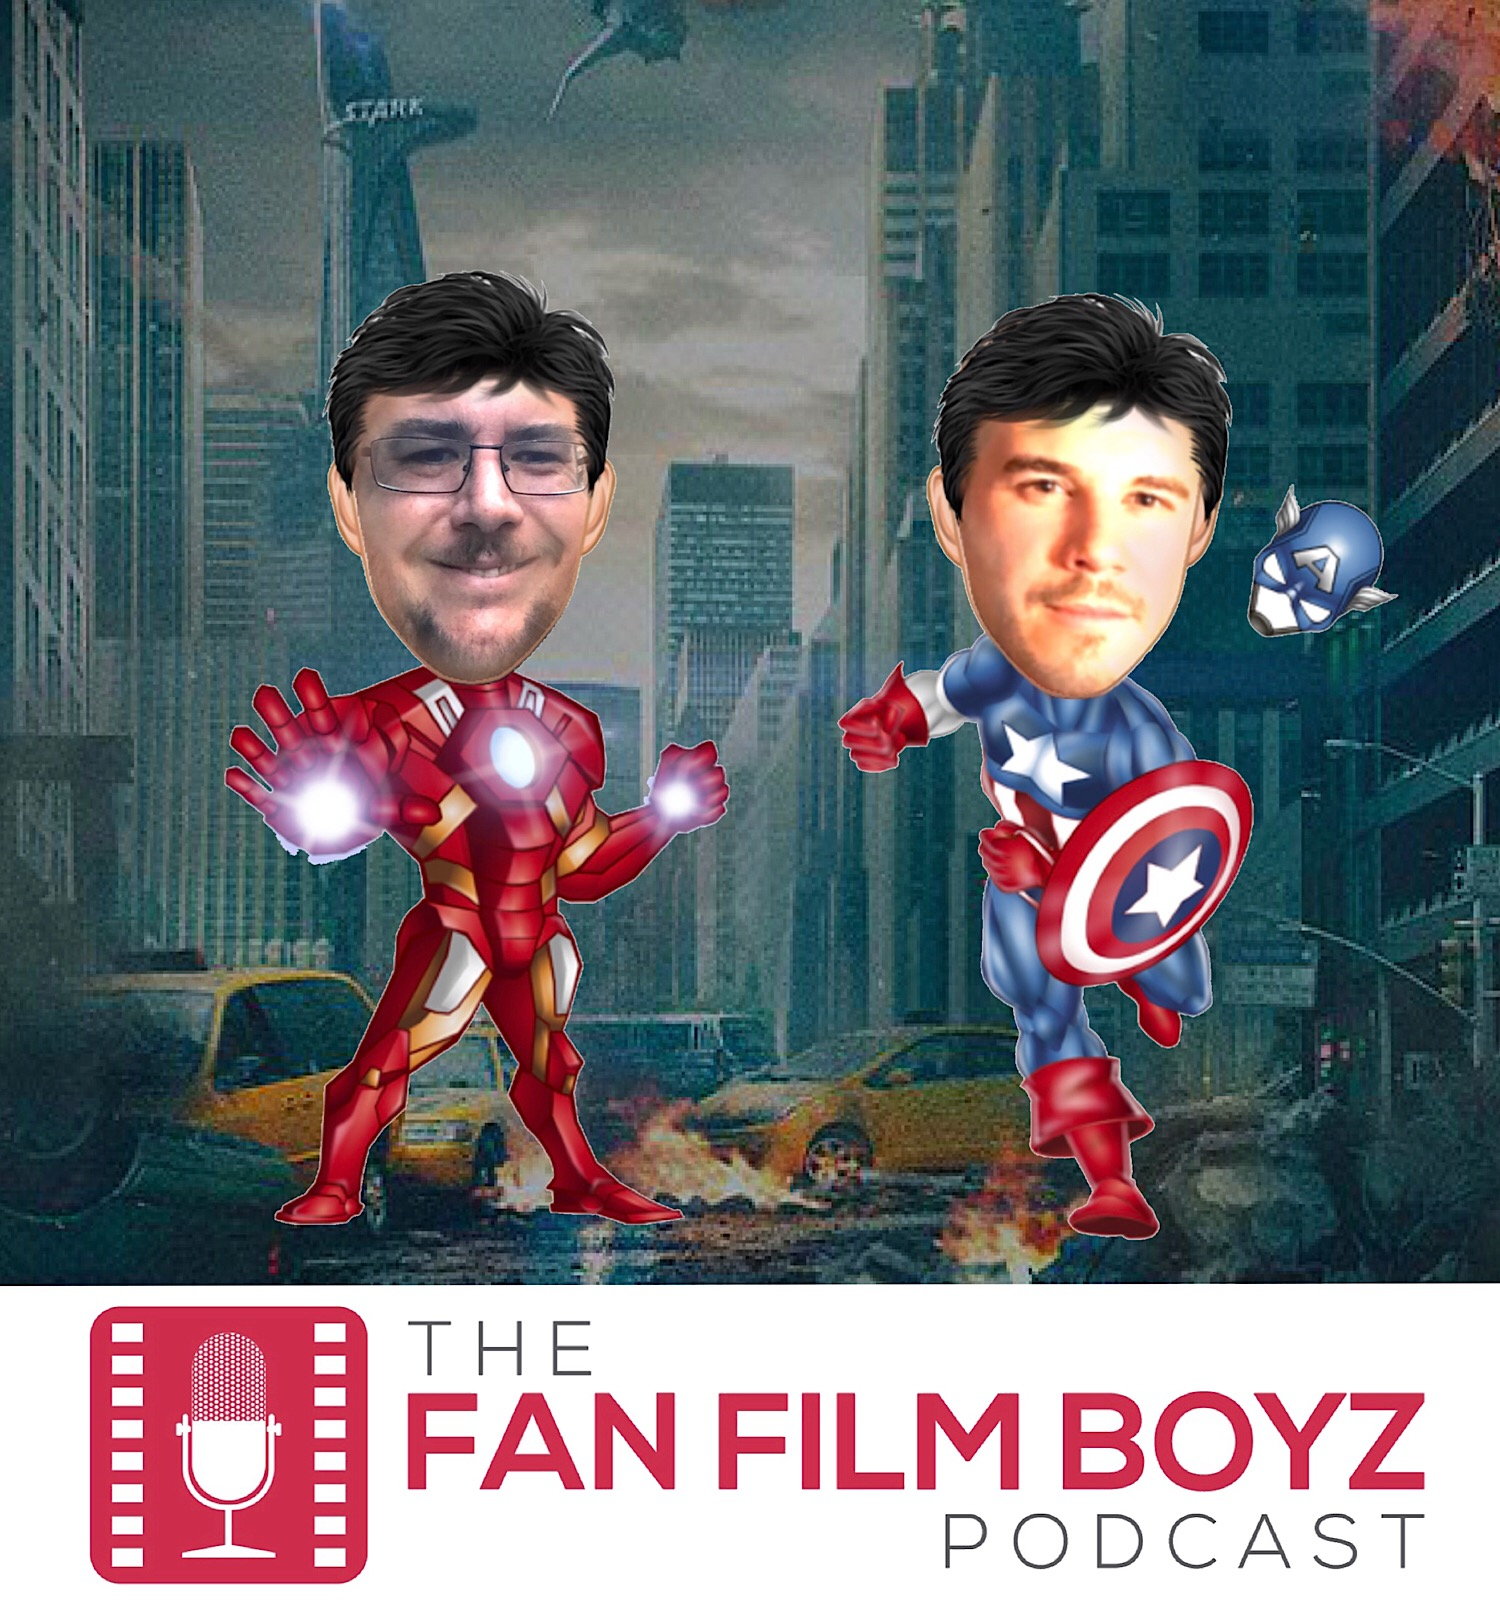 The Fan Film Boyz Podcast